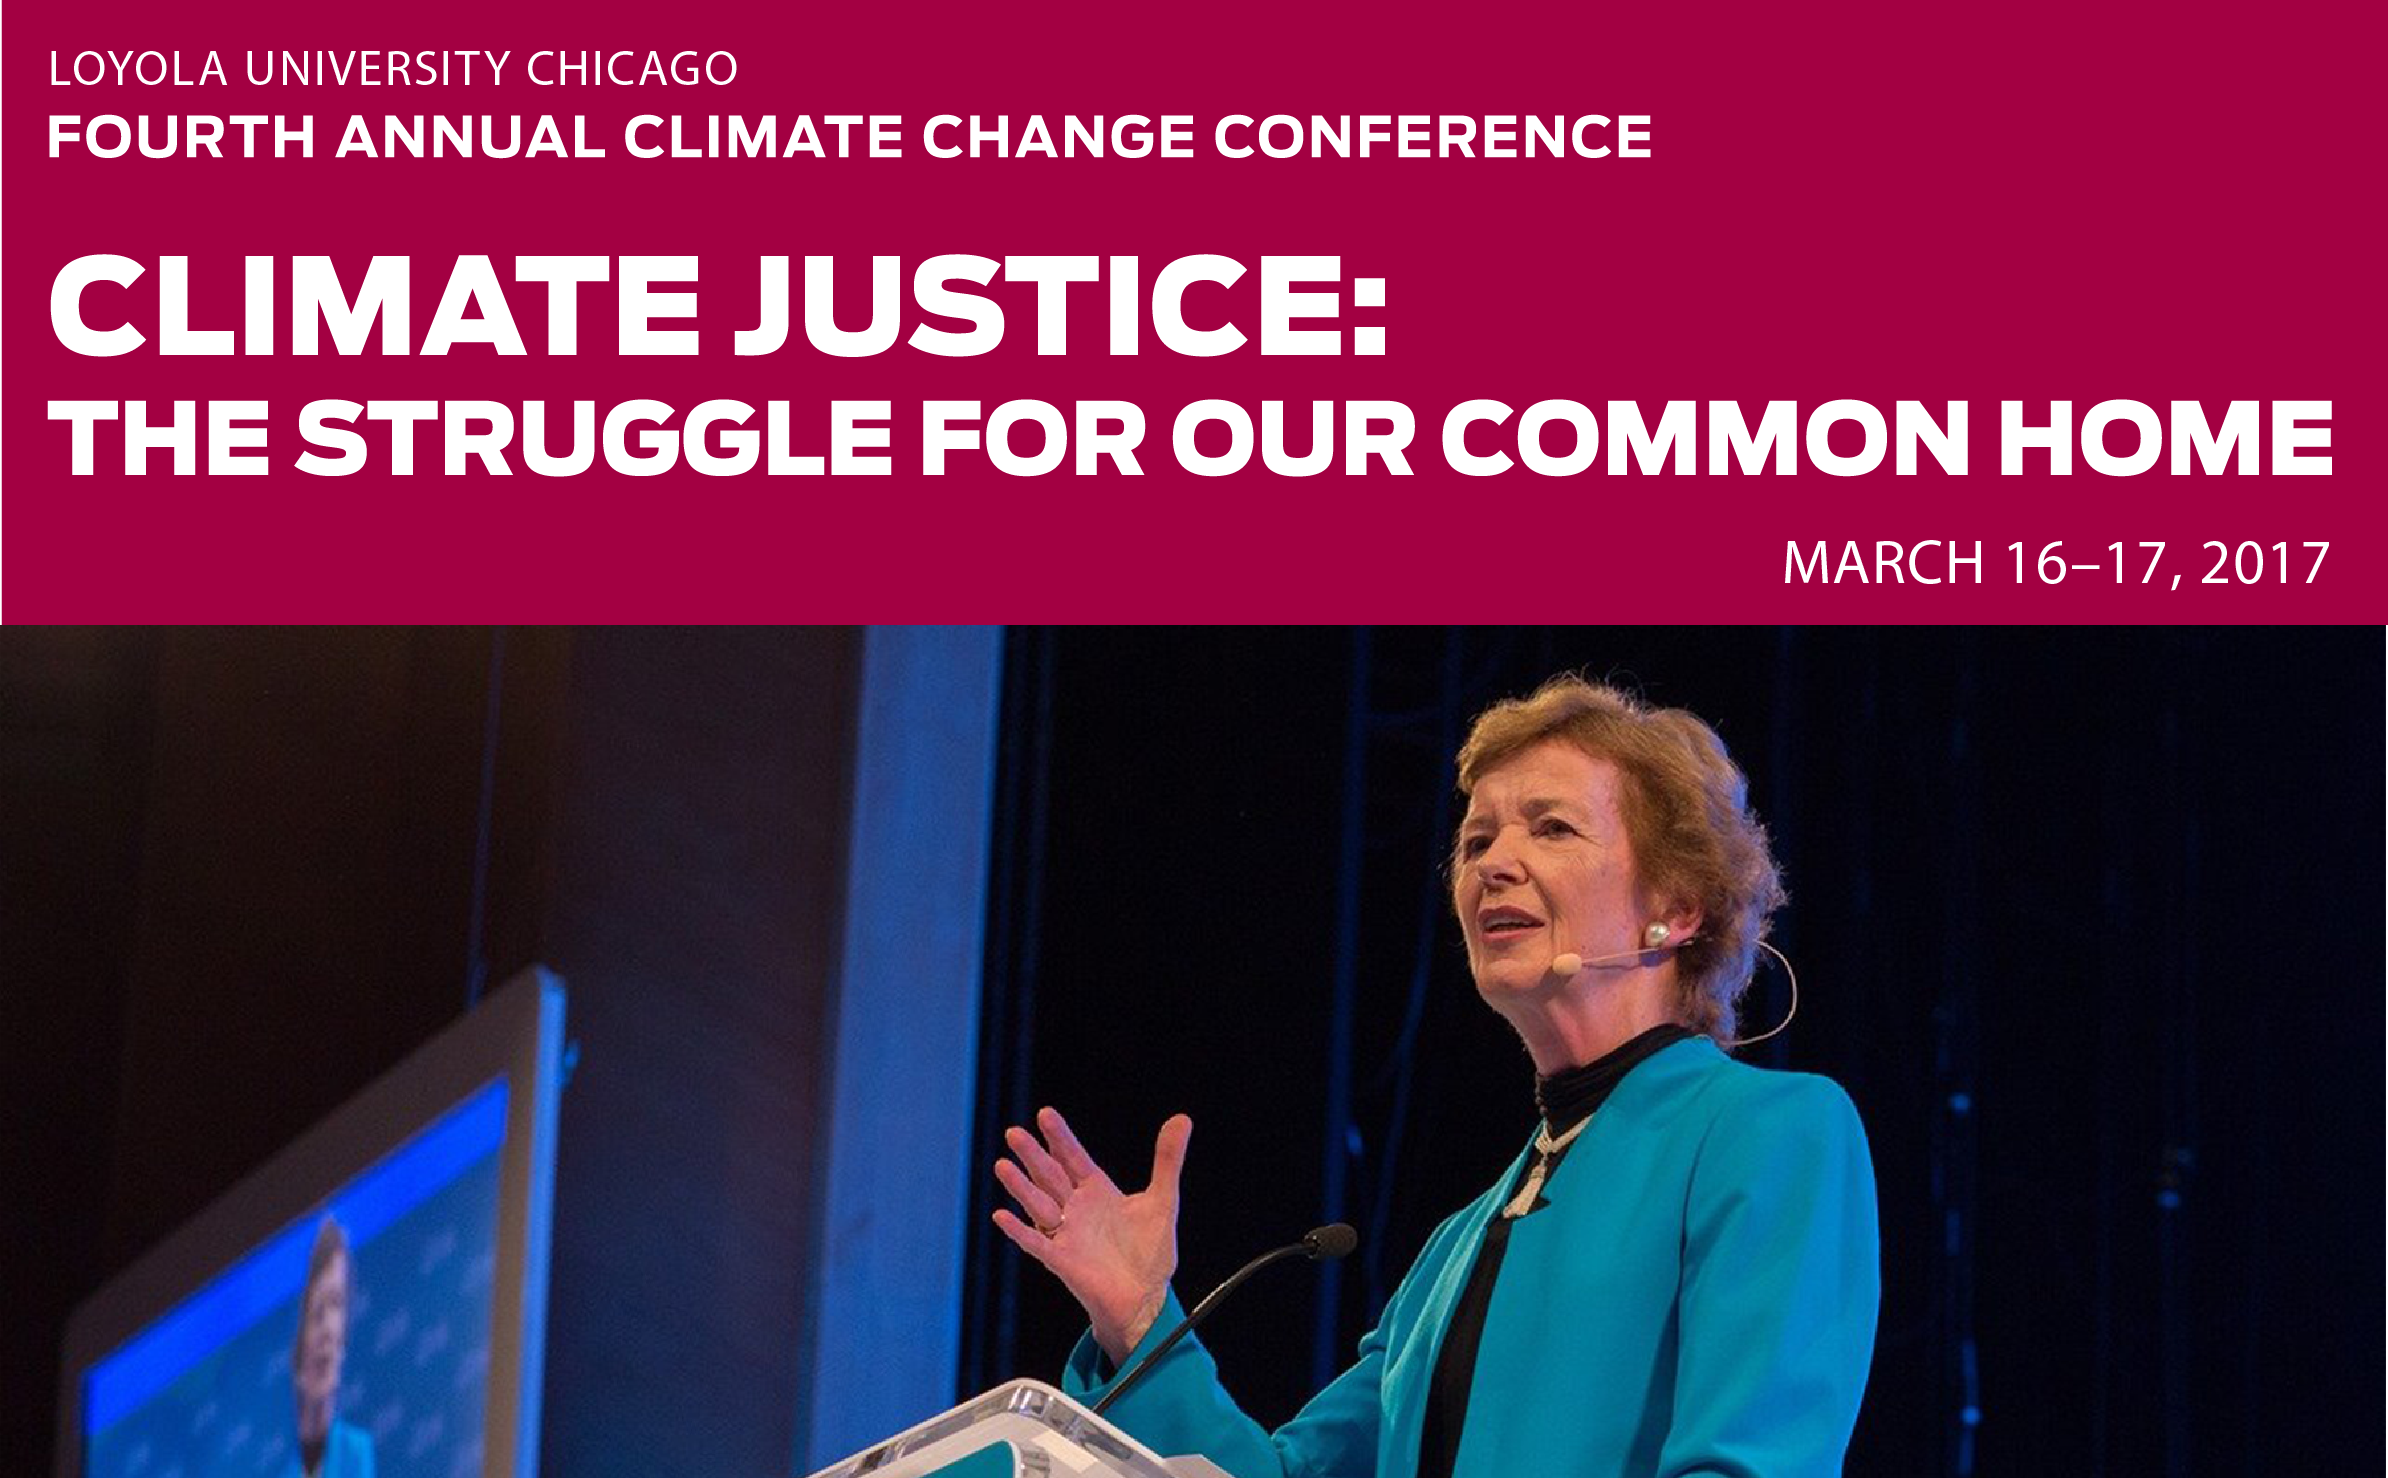 Loyola's 4th Annual Climate Change Conference